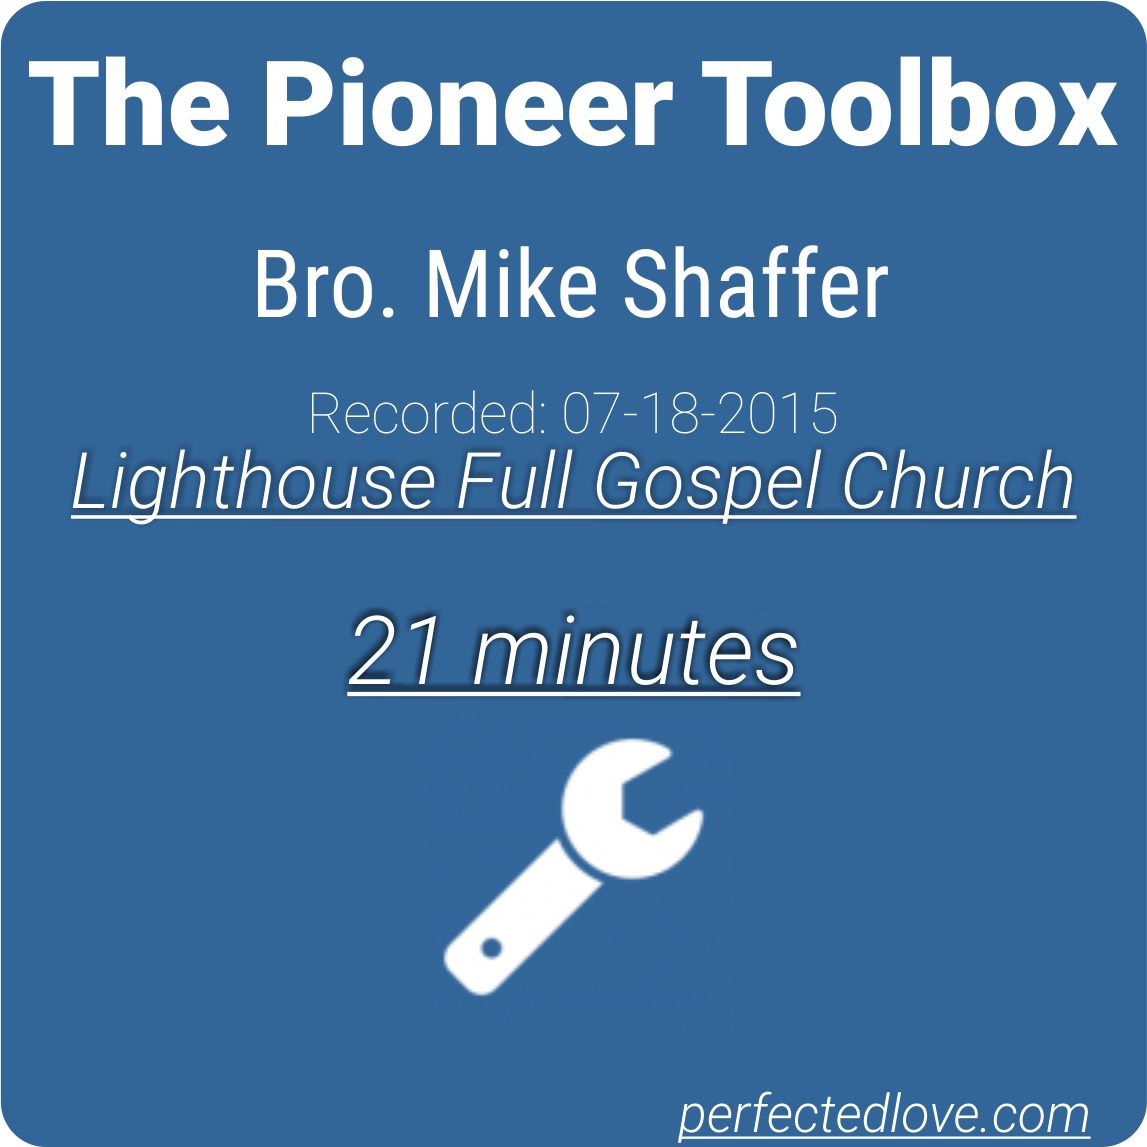 Bro. Mike Shaffer - Lighthouse Full Gospel Church